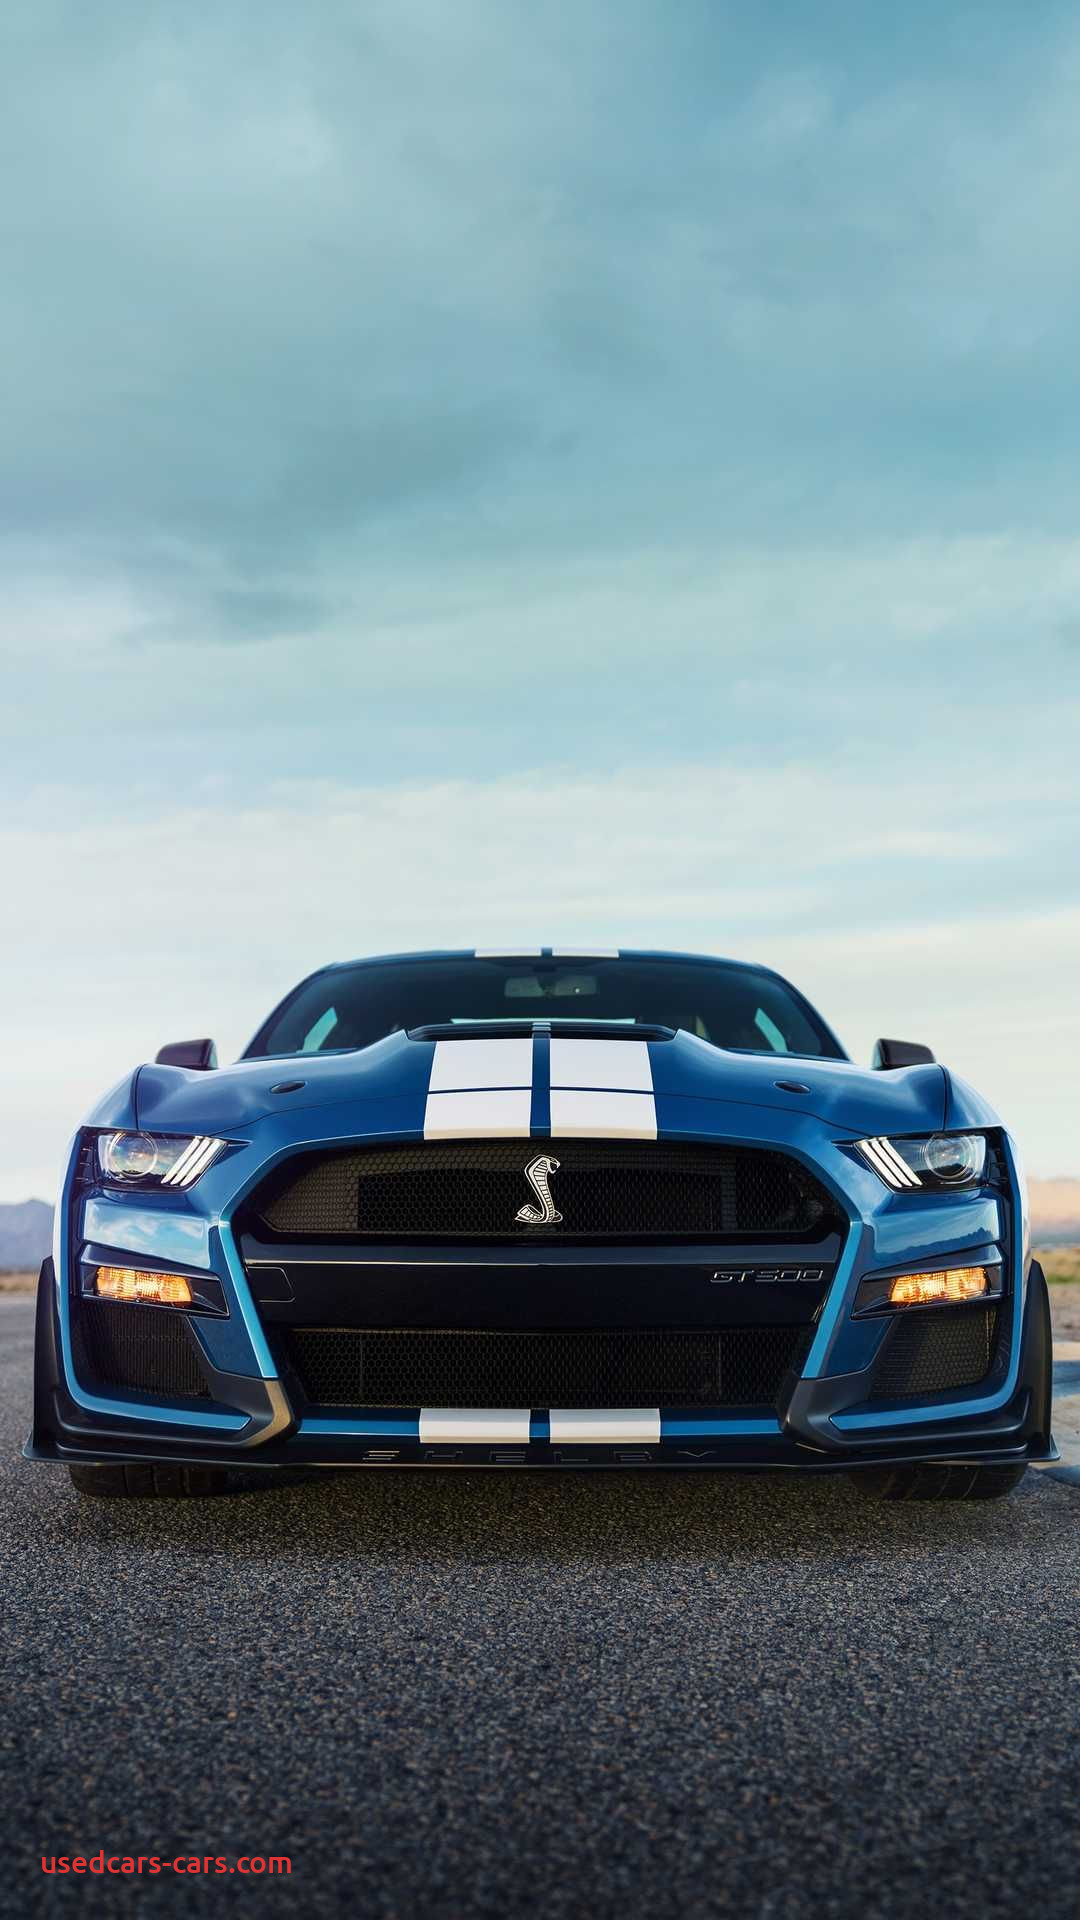 Ford 2020 Mustang Gt500 Luxury Follow Yasholo Unreal Shakespeare